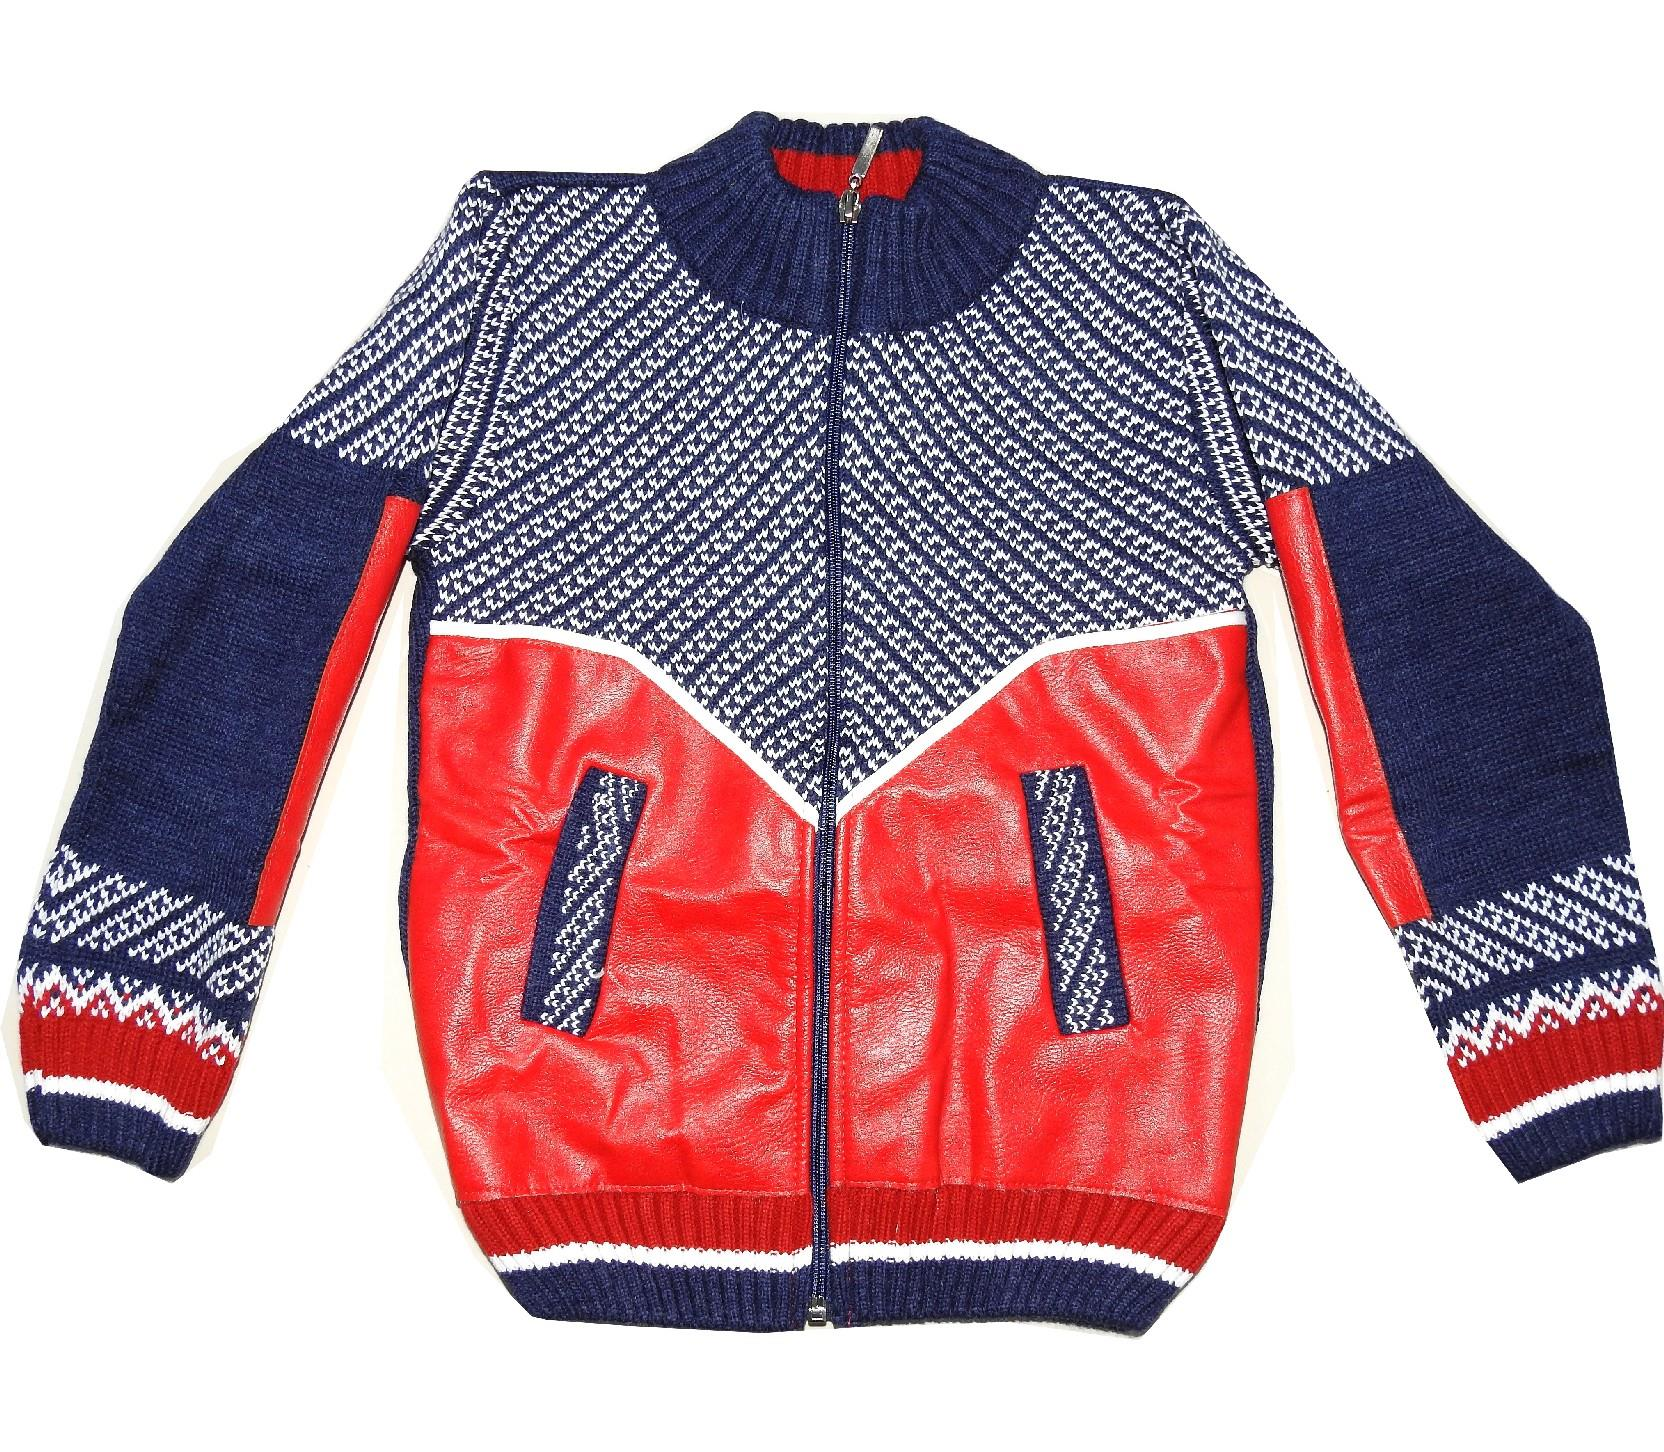 QUILTING LEATHERED SWEATER FOR BOY (5-7-9 AGE)